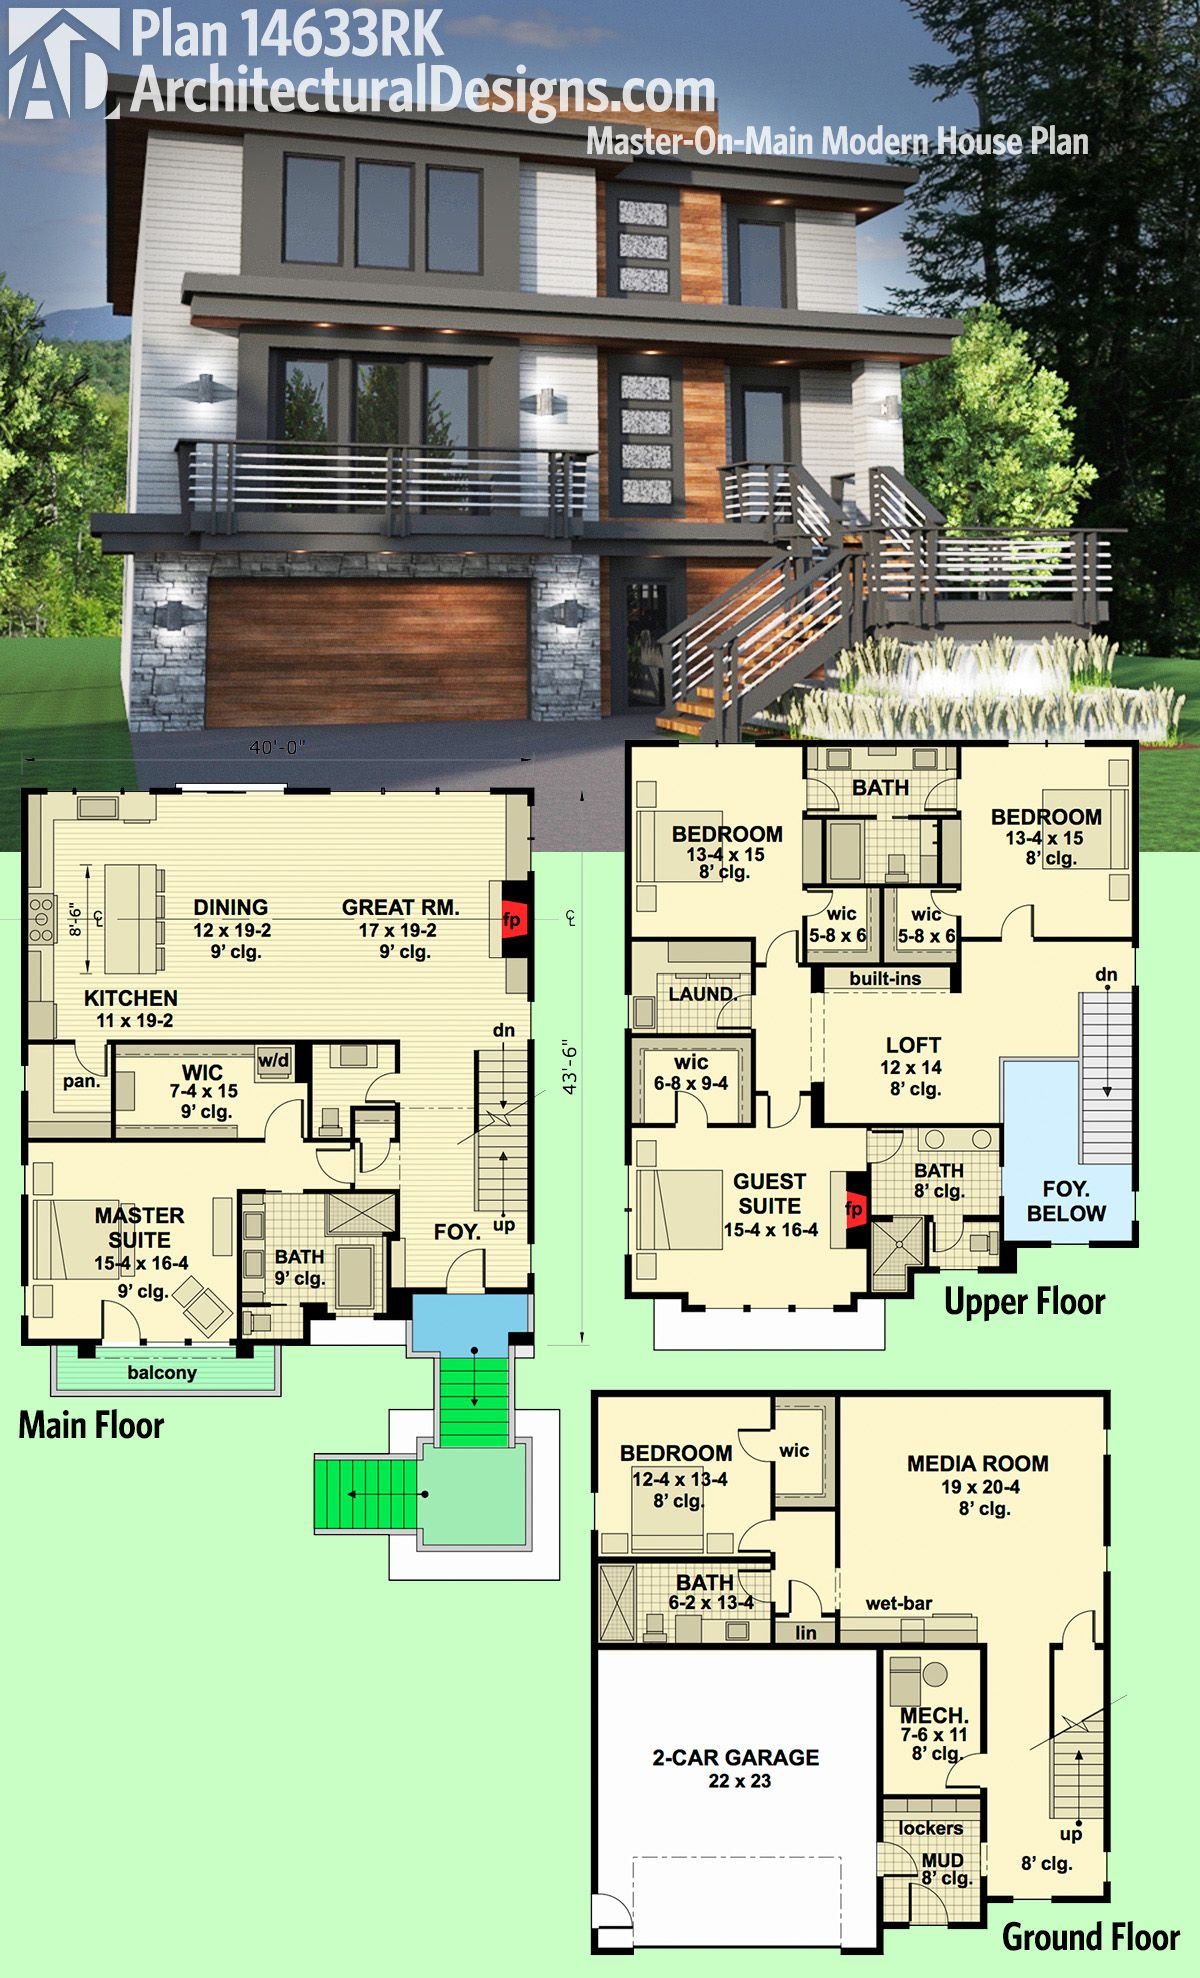 Plan 14633rk master on main modern house plan modern for Modern mansion floor plans